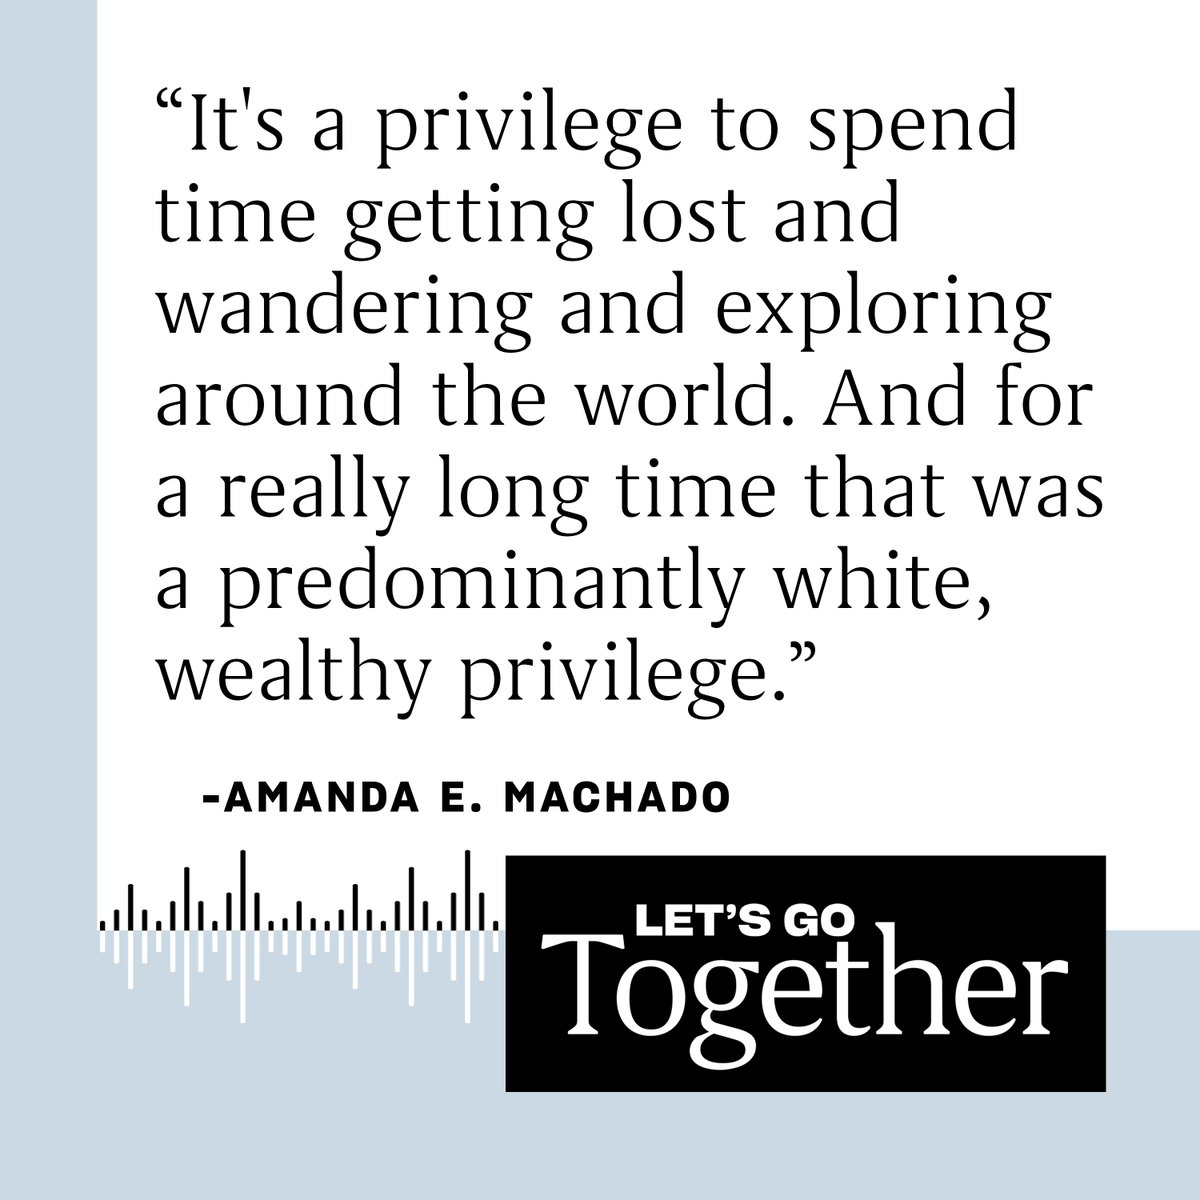 On this week's podcast episode, writer Amanda E. Machado talks to host @KelleeSetGo about traveling the world, hiking, and backpacking as a Latina and the daughter of immigrants — and why we all belong in nature. Click to download and listen: https://bit.ly/3a0wAeP pic.twitter.com/QyEDmwBsfn